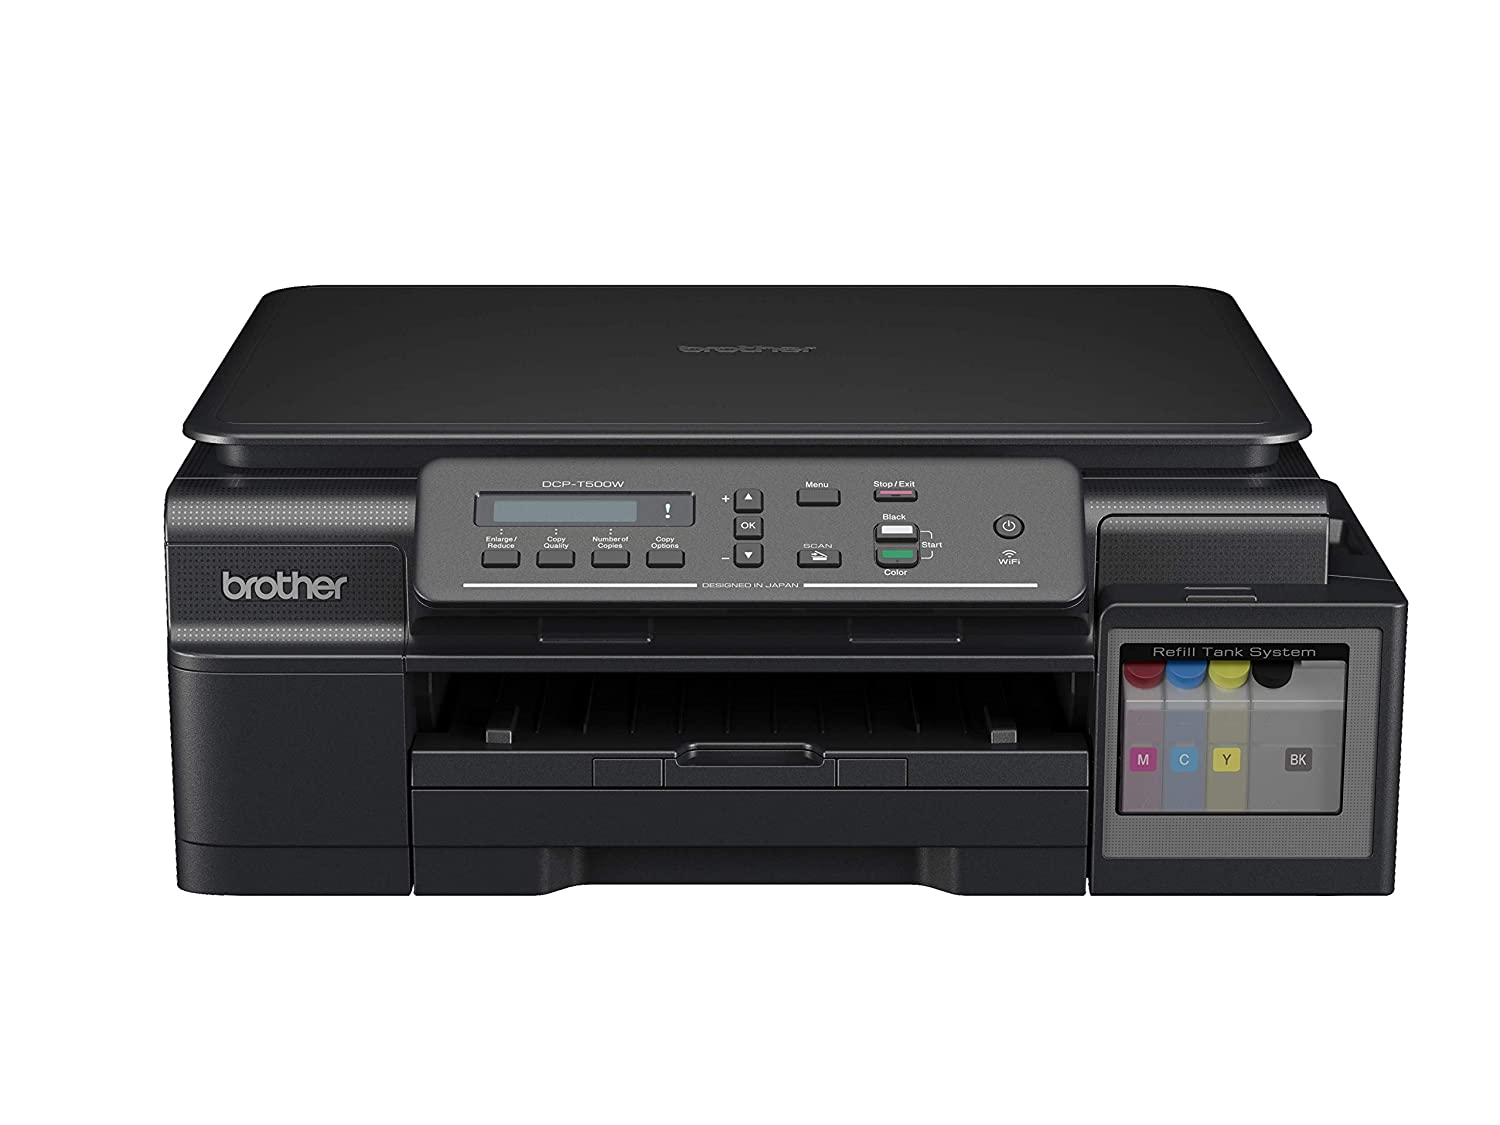 BROTHER DCP-T500W PRINTER DRIVER